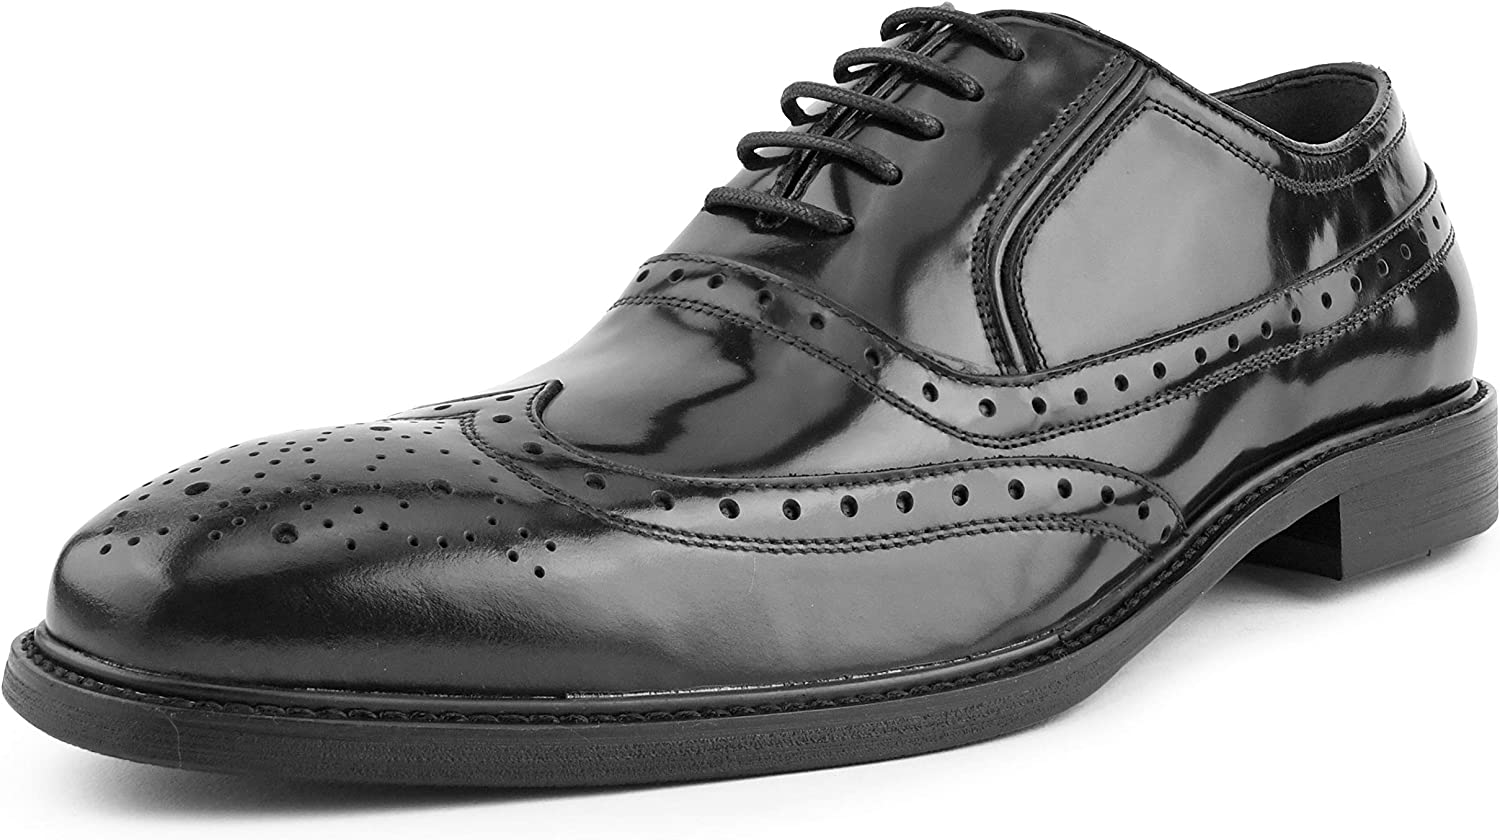 Classic Lace-Up Oxford Style Asher Green Mens Genuine Box Calf Leather Wingtip Dress Shoe